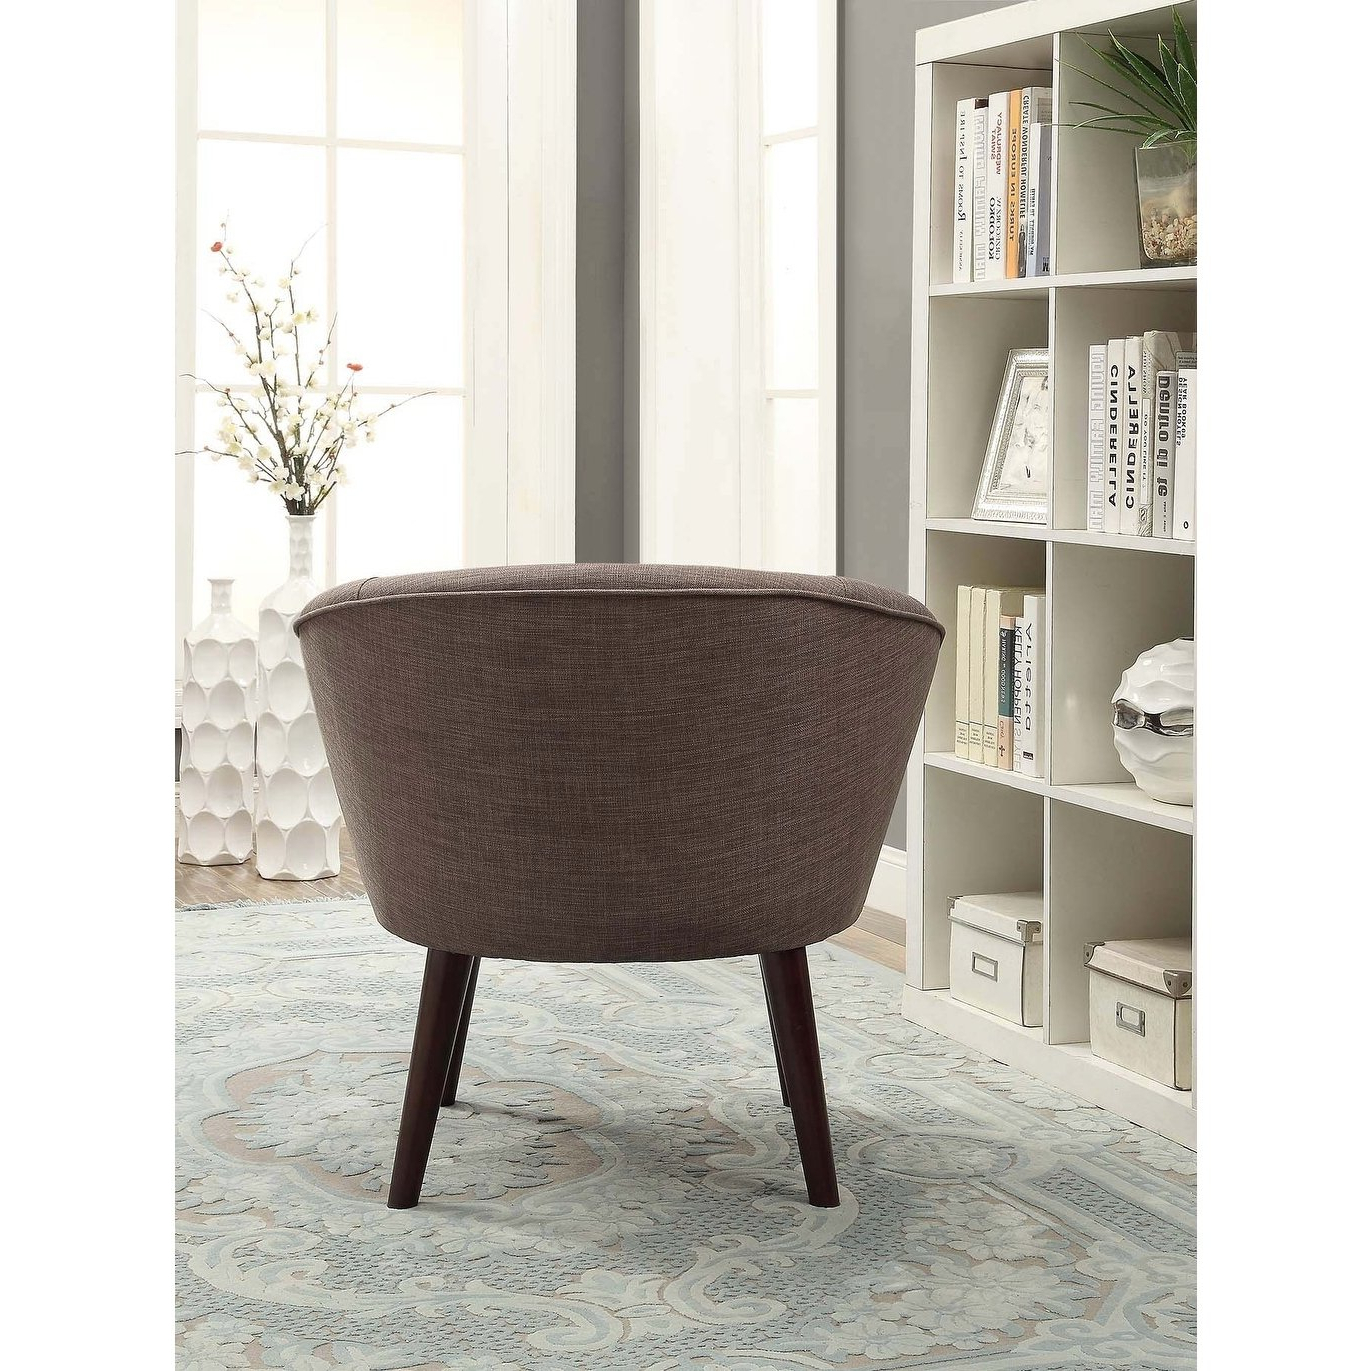 Shop Acme Amari Accent Chair In Stone Gray Linen – Free Shipping With Regard To Most Recent Amari Swivel Accent Chairs (View 20 of 20)